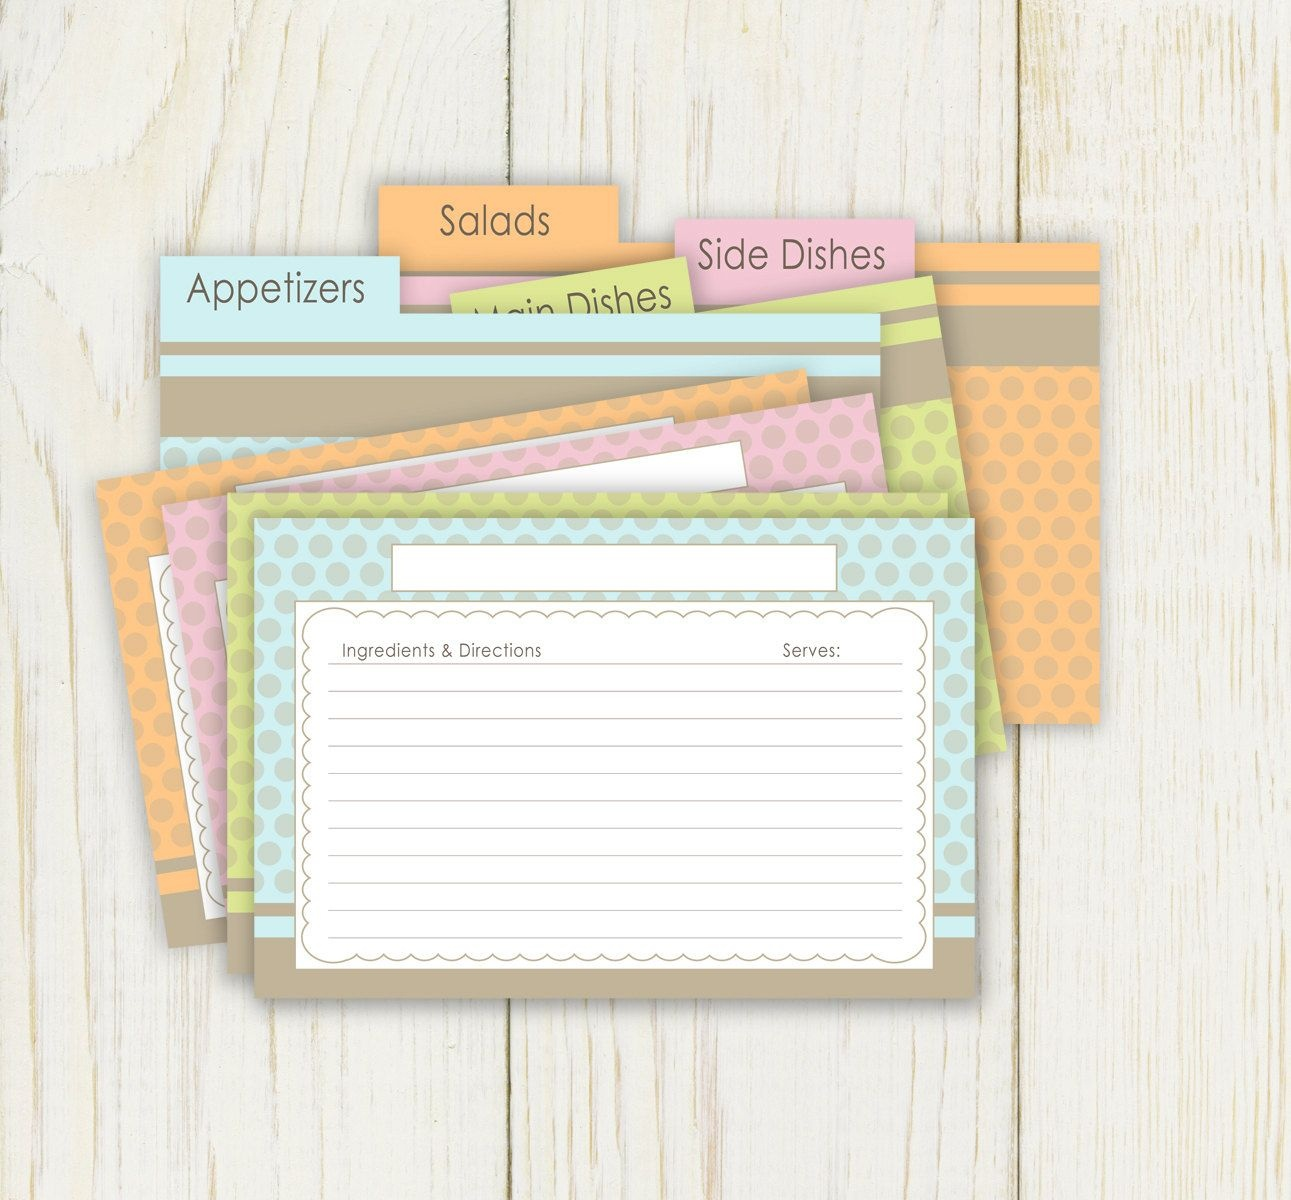 Printable Recipe Cards 4X6 Free   Dots Recipe Cards And Dividers 4X6 - Free Printable Photo Cards 4X6